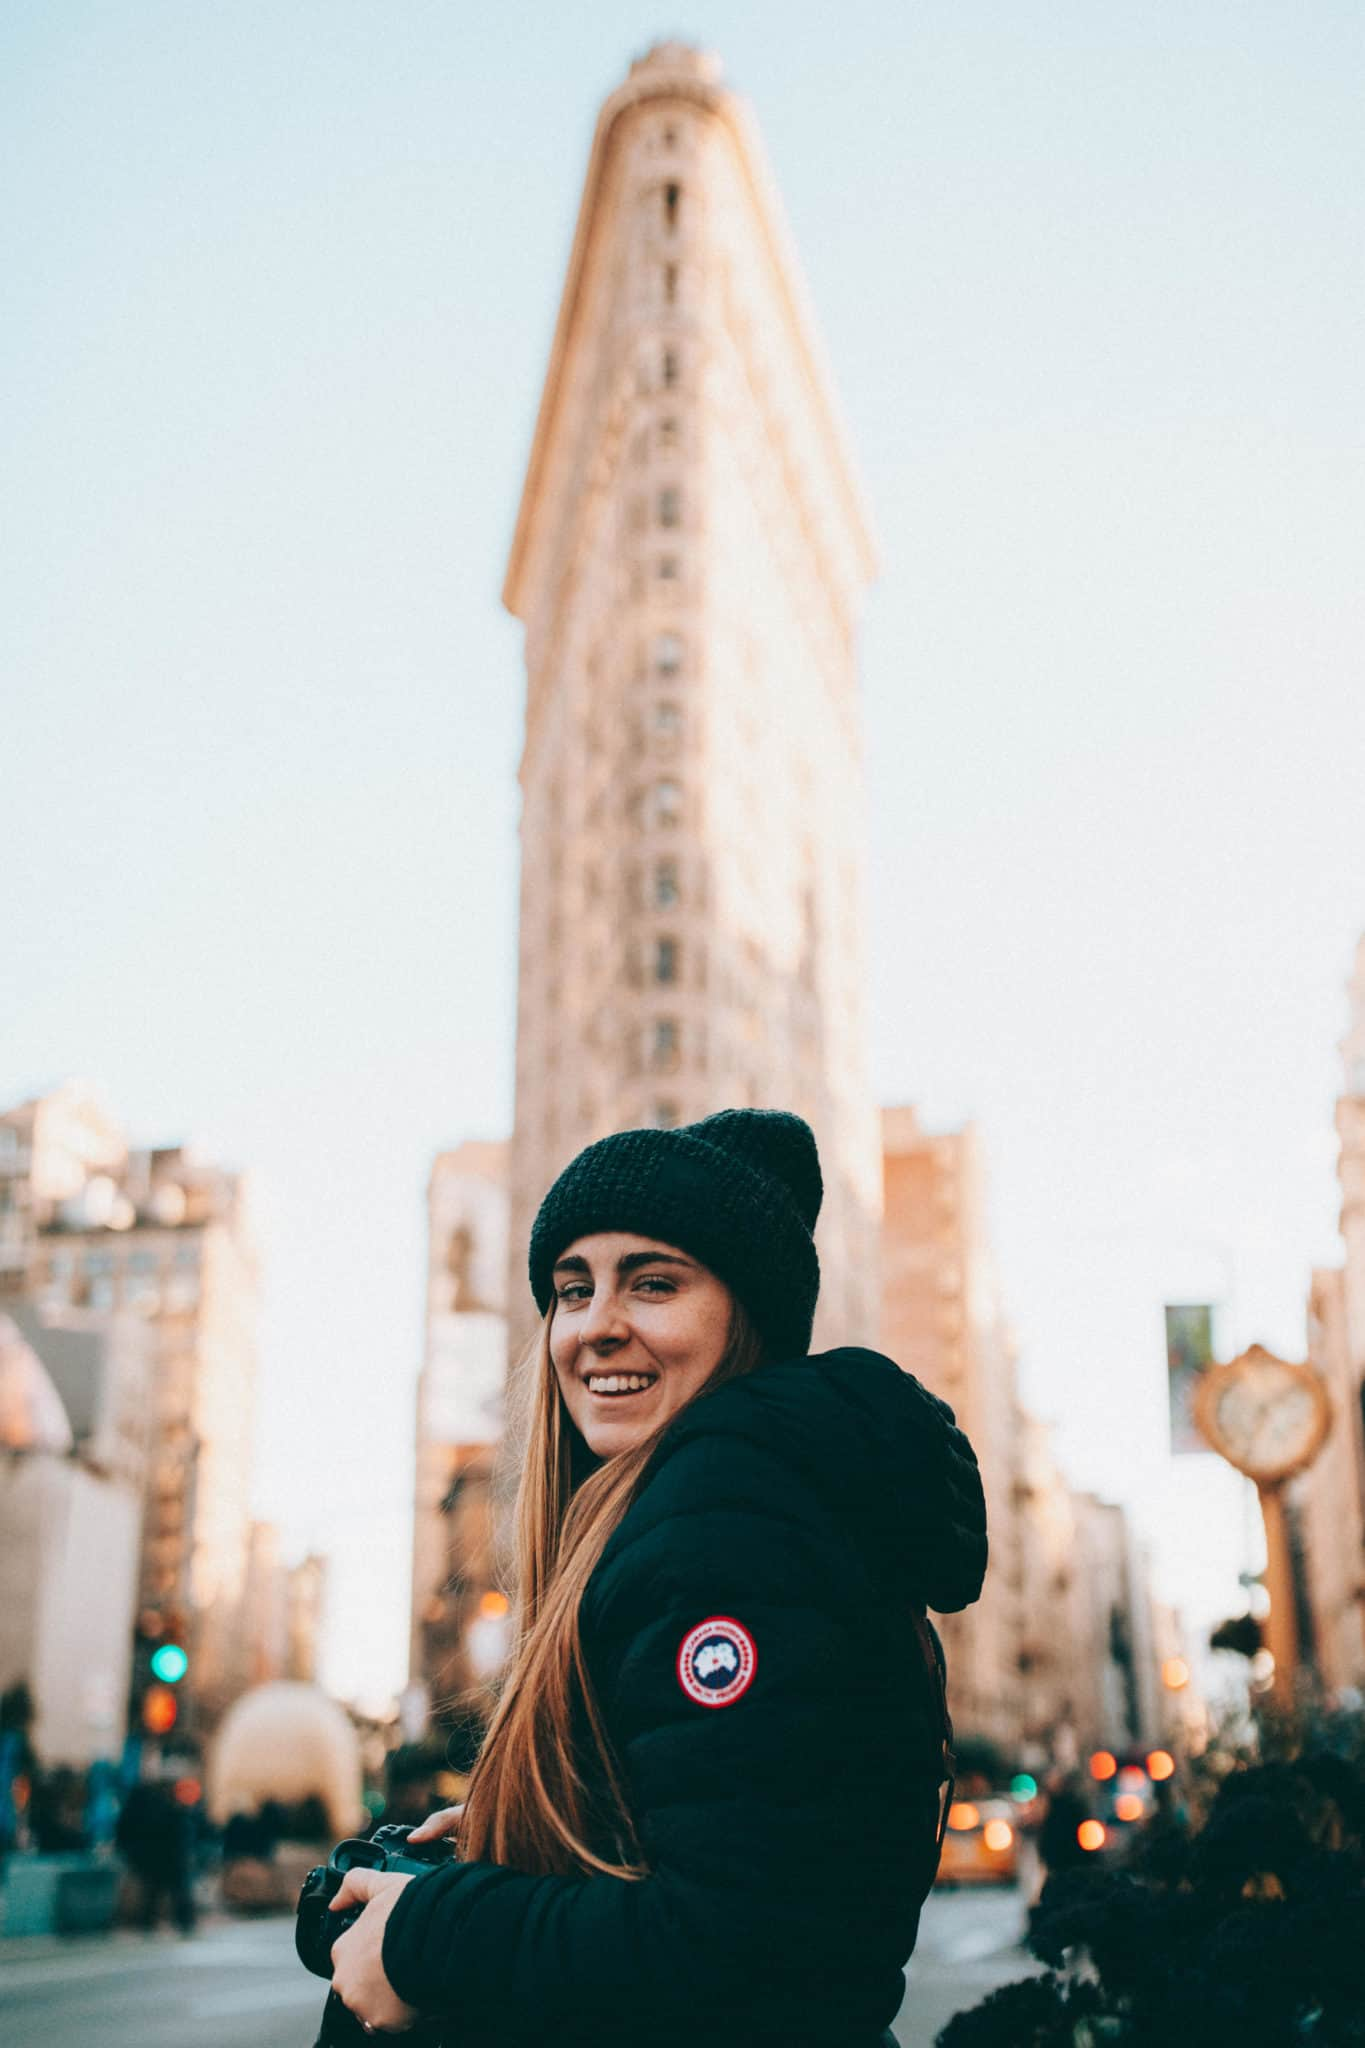 Flatiron Building with Emily Mandagie - Photo Spots In NYC a14256a68